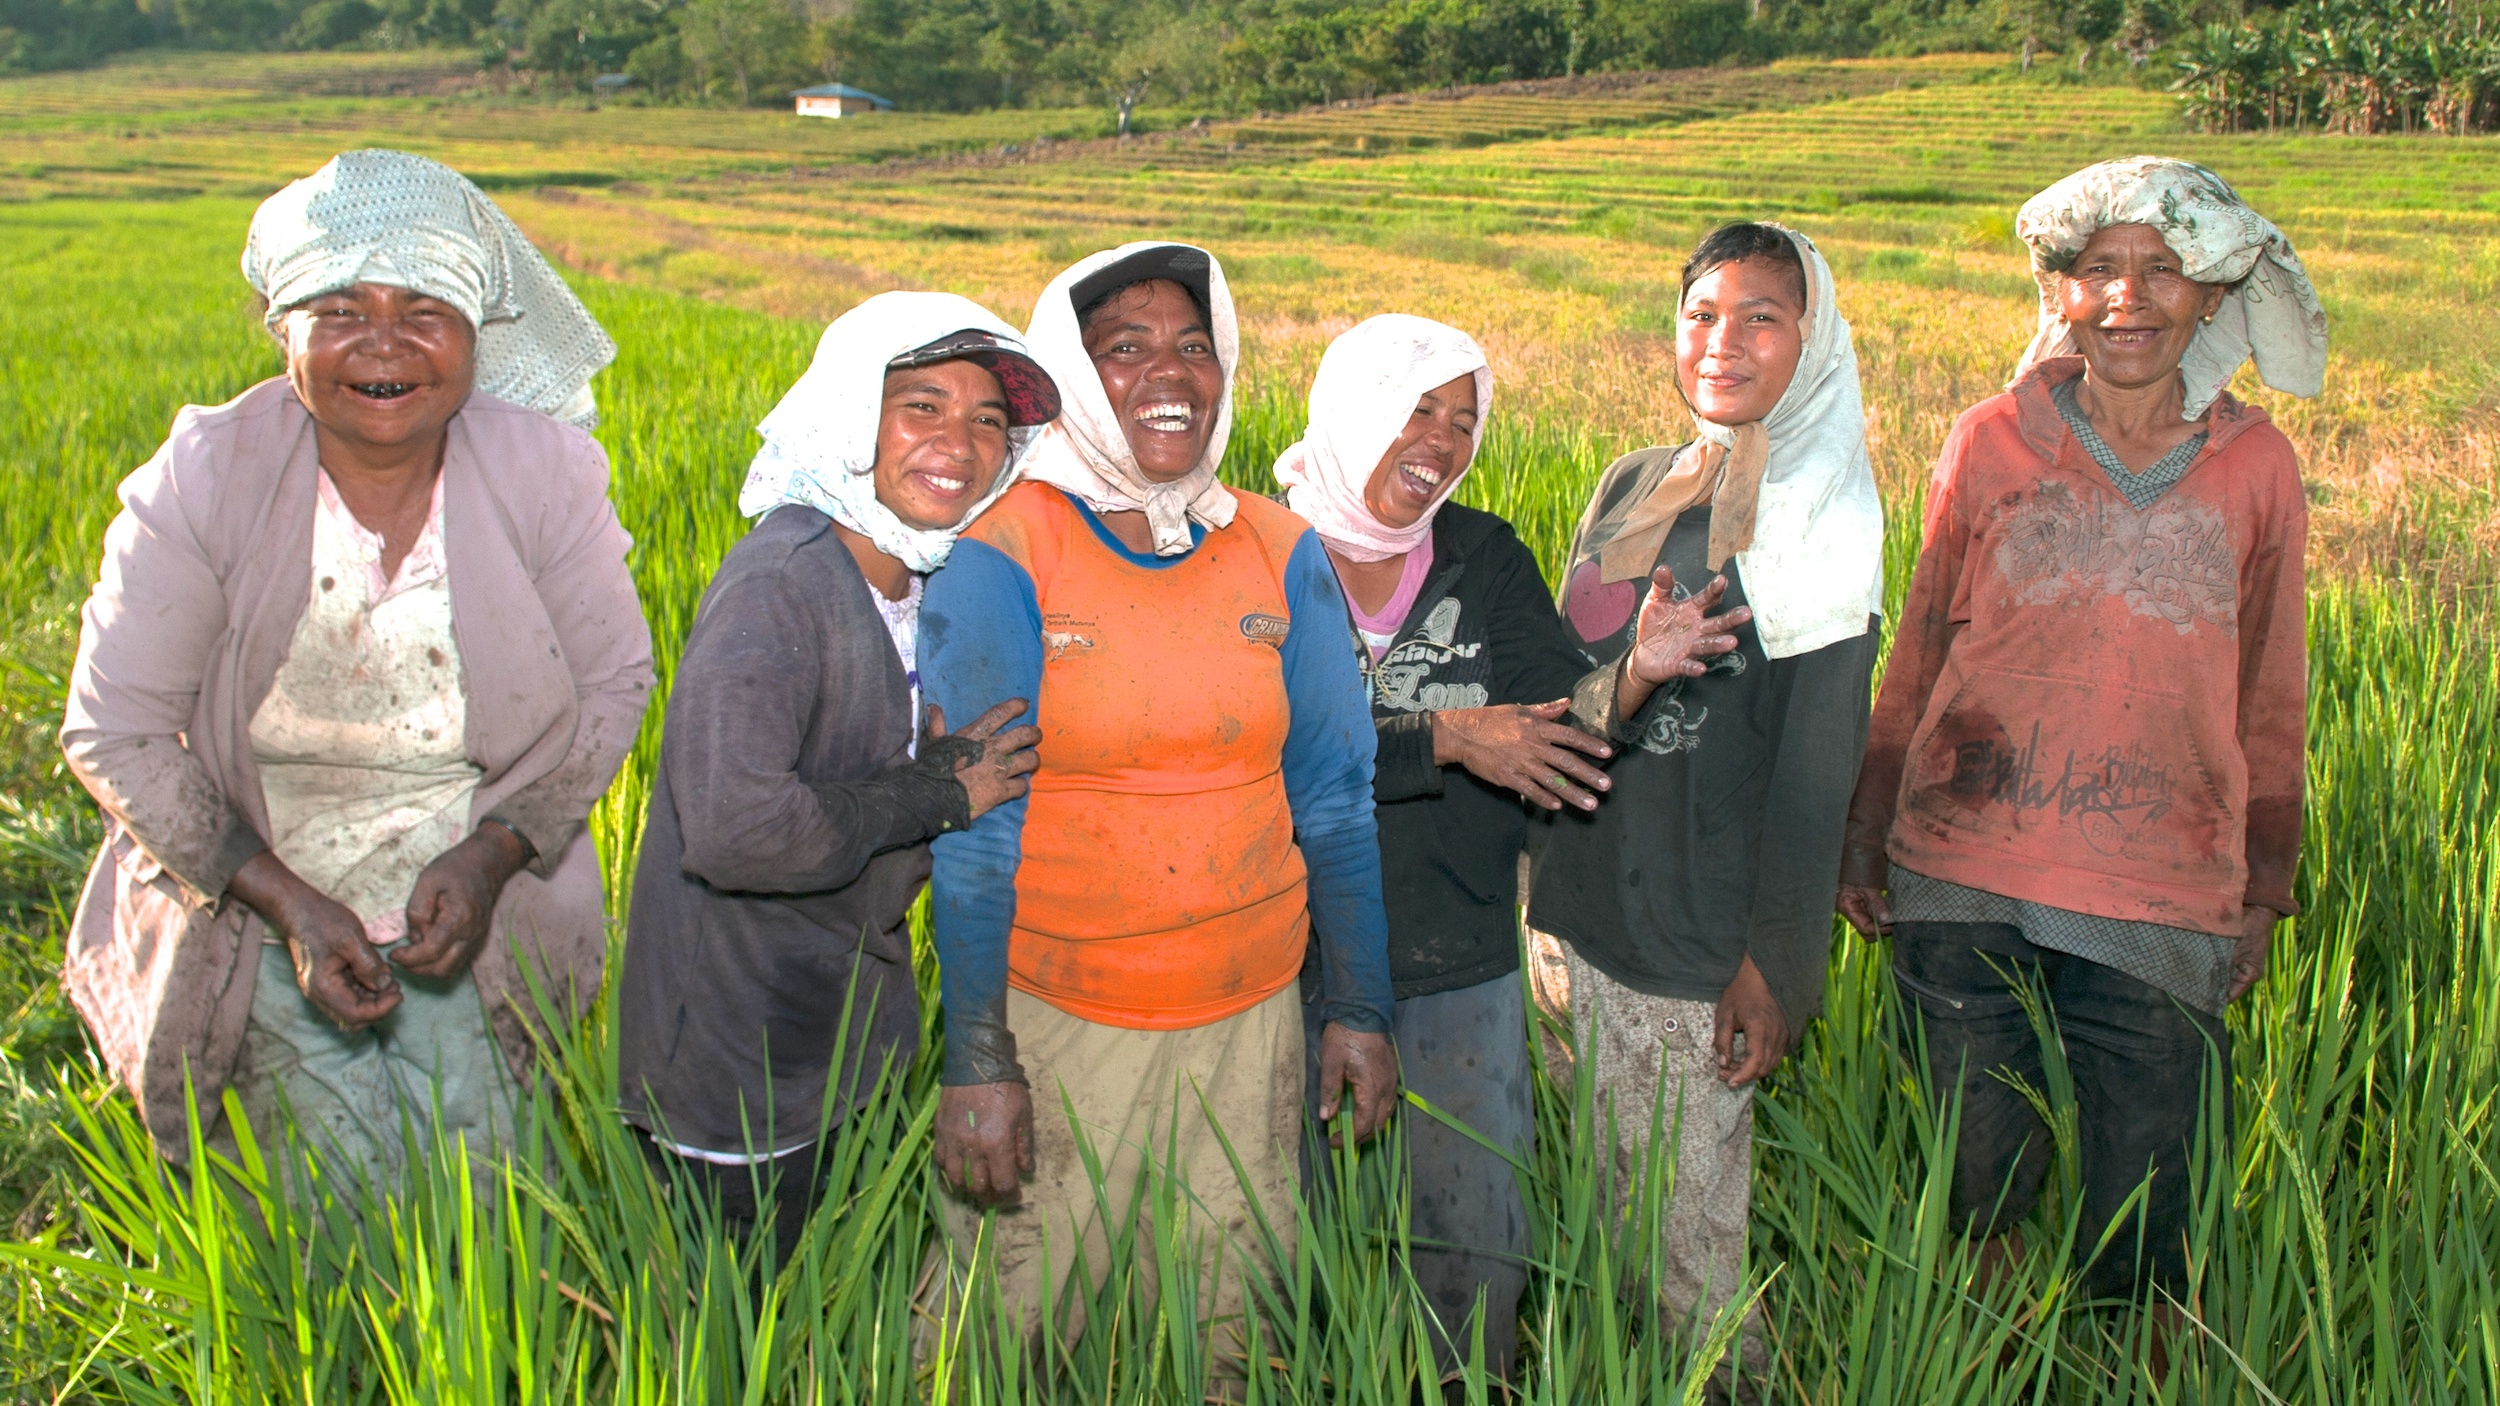 Rural women across the globe: Linking livelihoods and landscapes